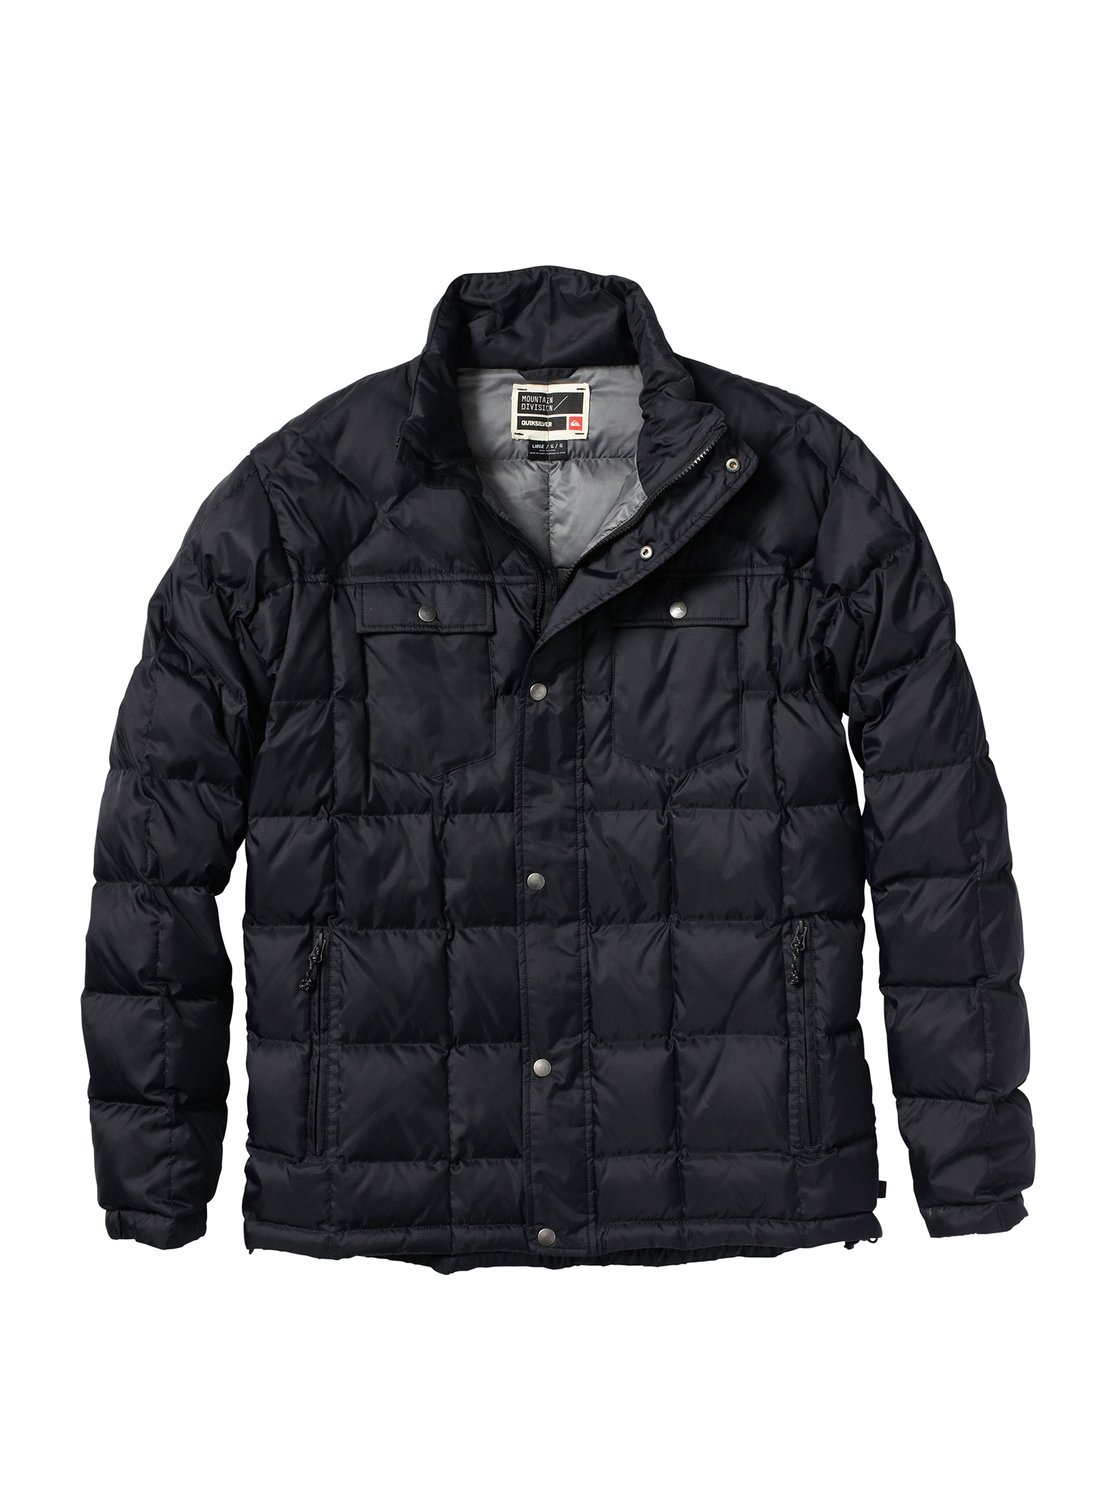 Quiksilver Mountain Division Outerwear